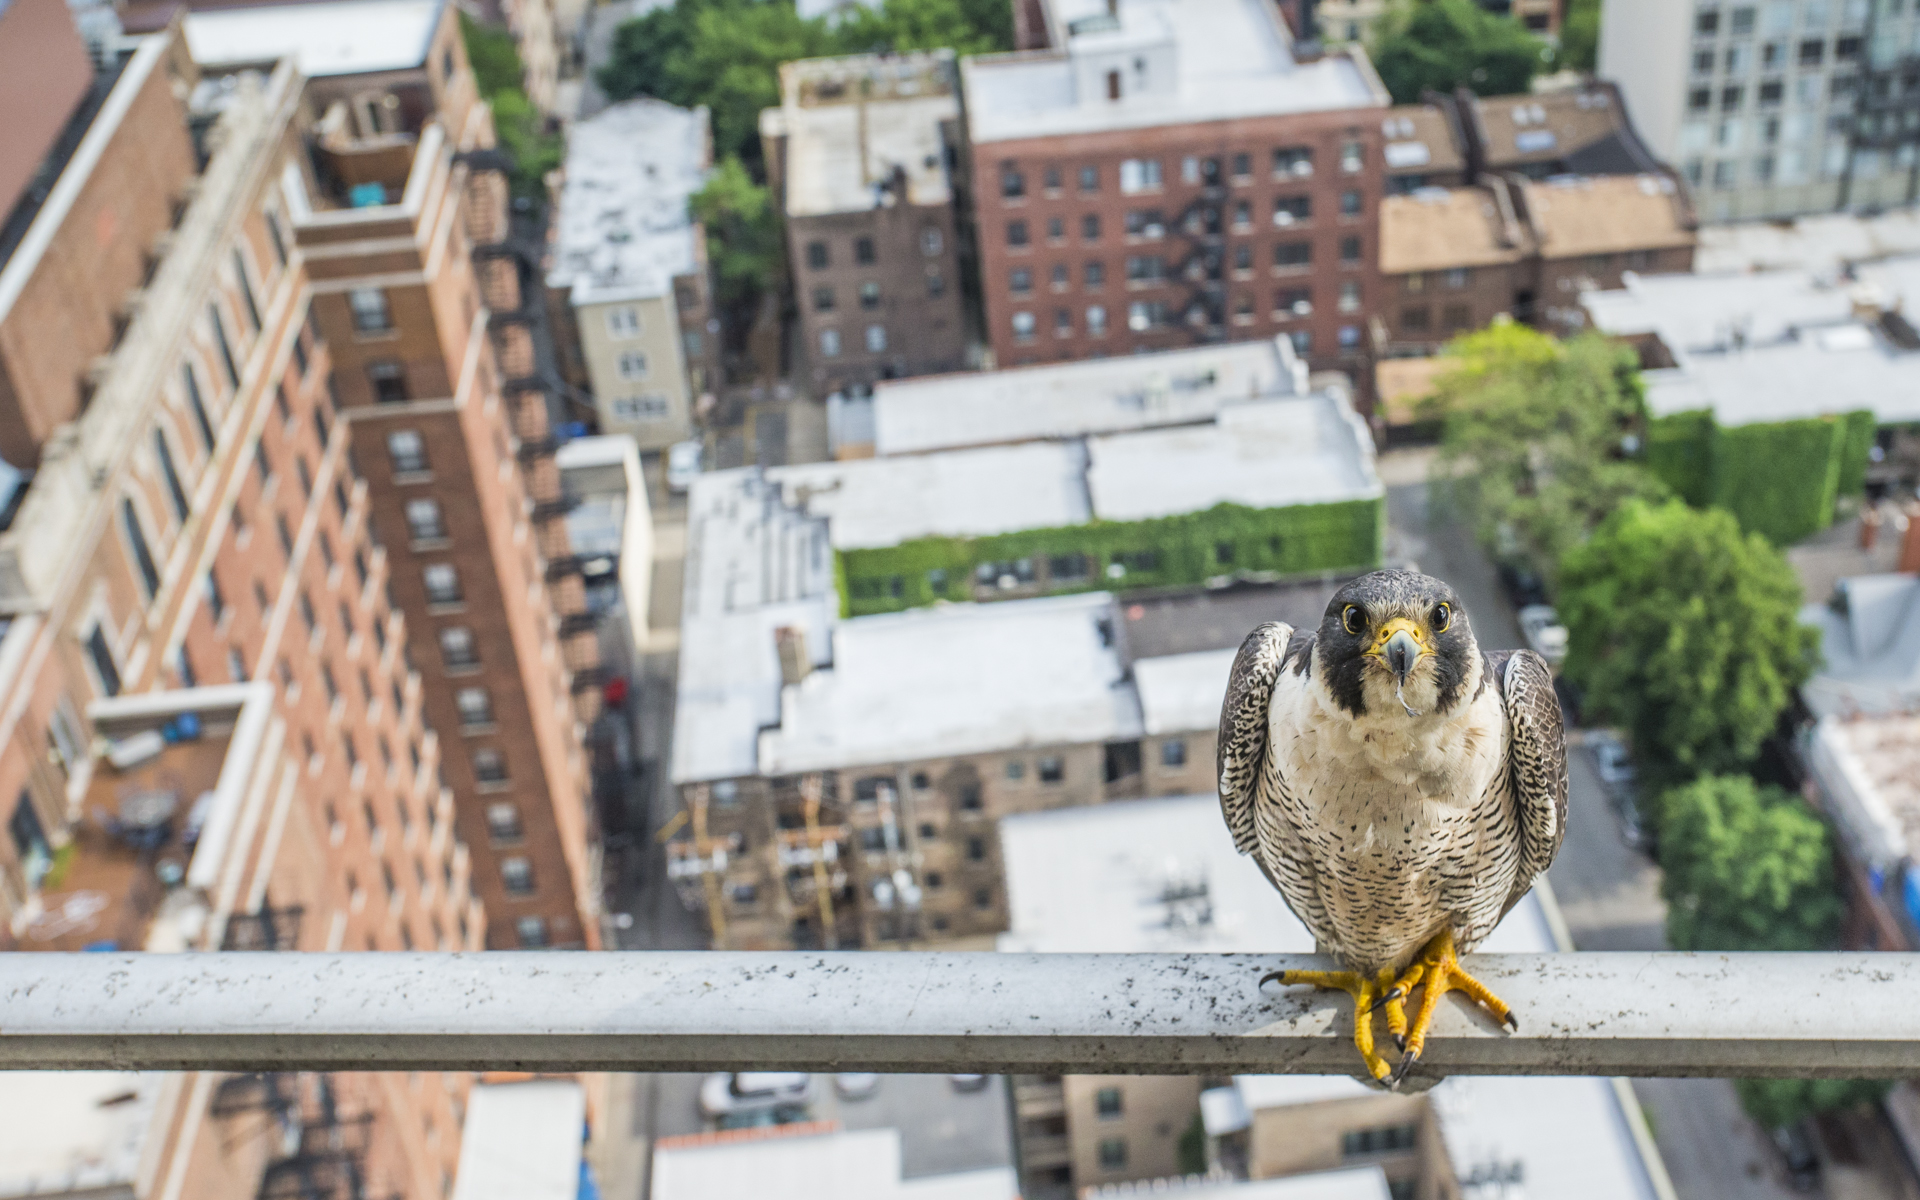 It is amazing to think these birds were on the brink of extinction 30 years ago and now thrive in the centre of such a large city.